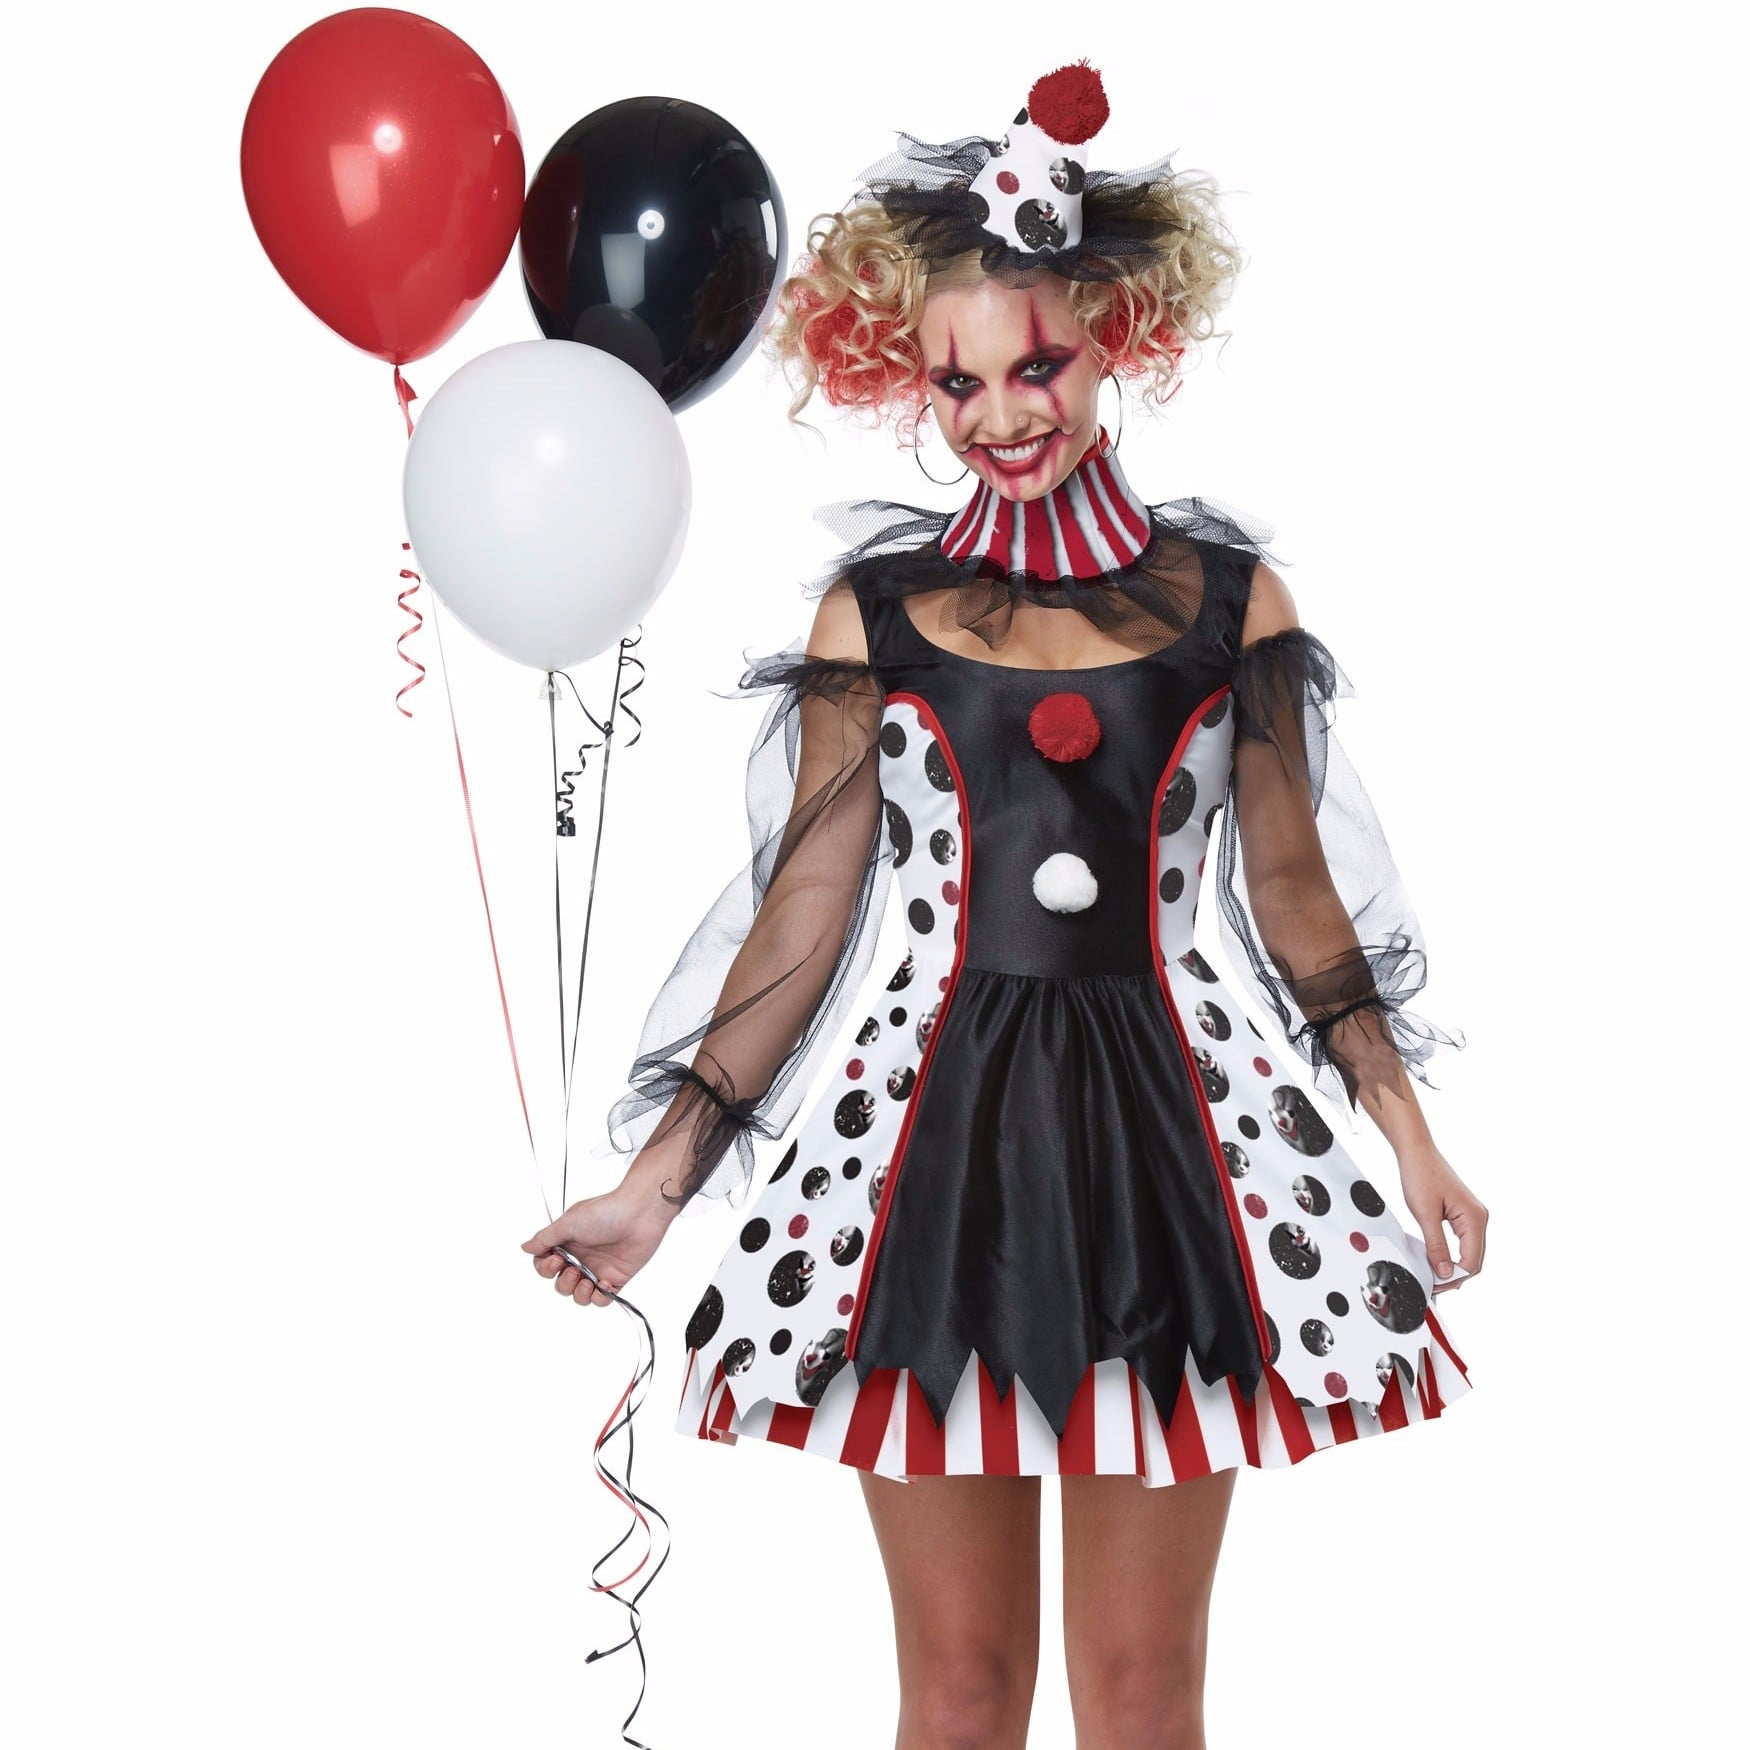 sc 1 st  Popsugar & Scary Halloween Costumes on Amazon For Women | POPSUGAR Smart Living